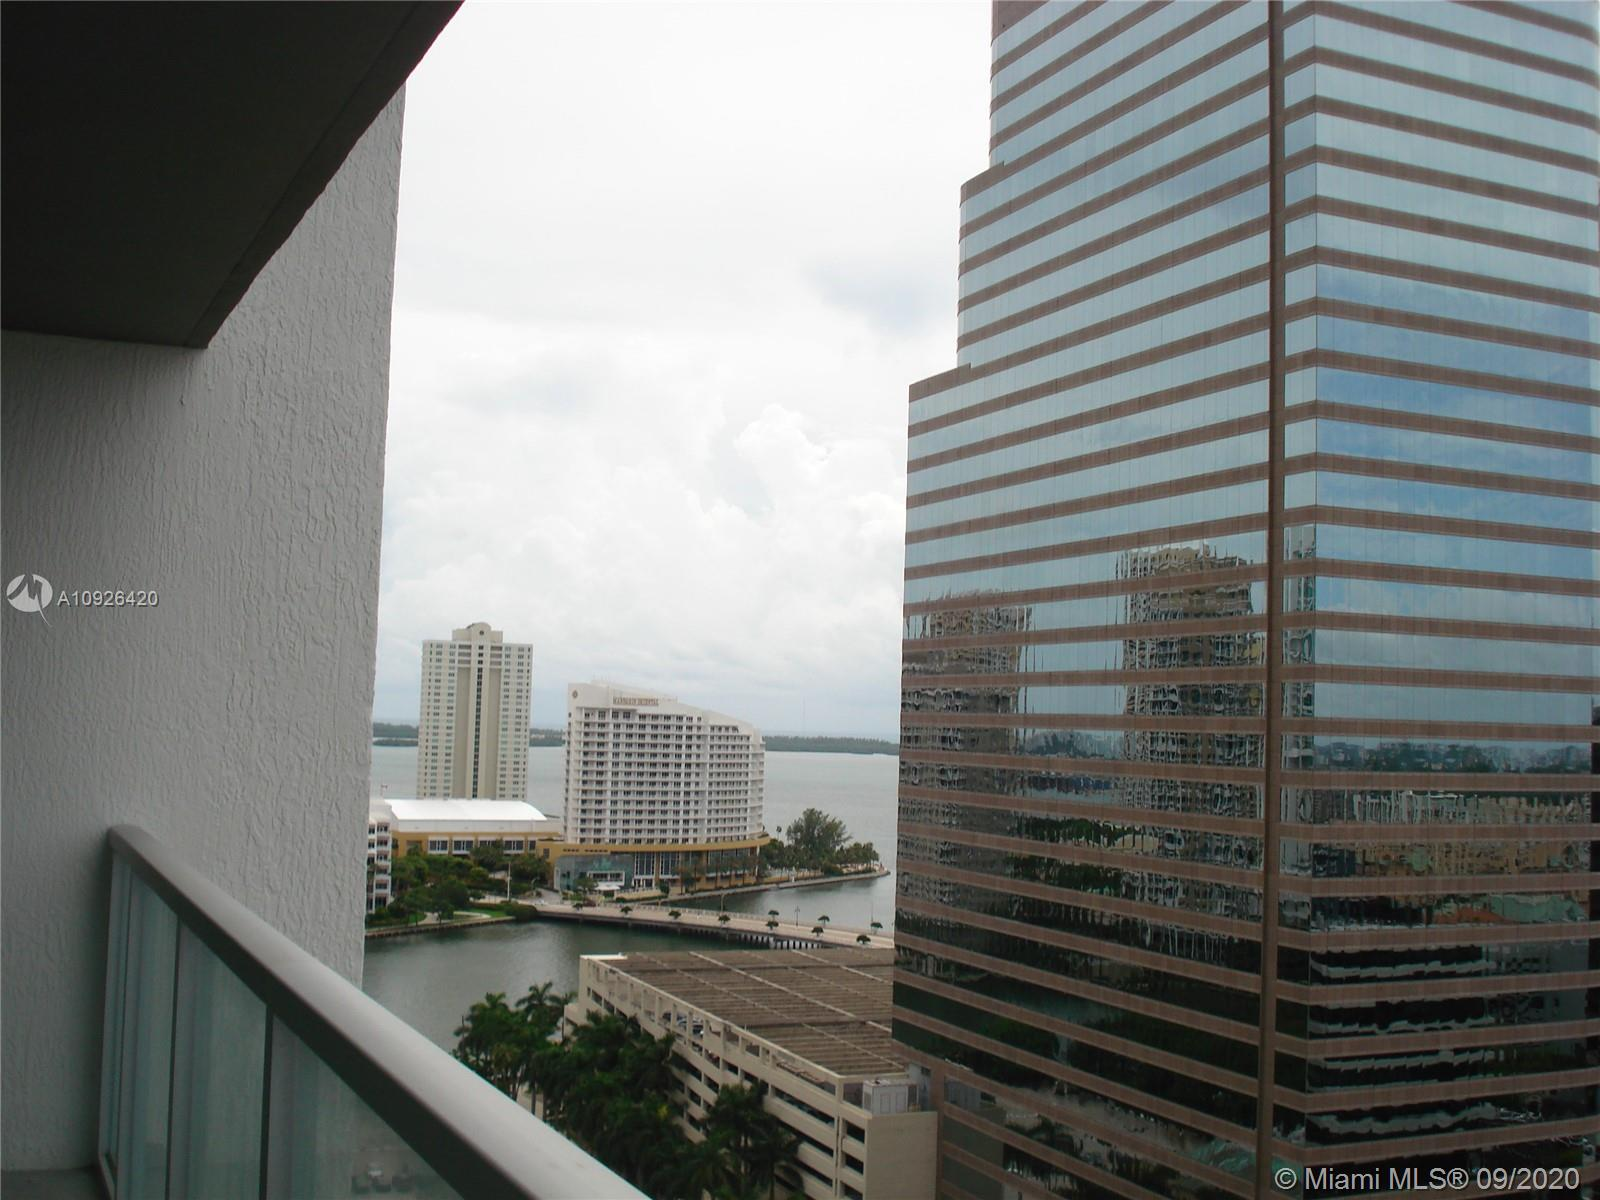 GREAT 1/1 UNIT LOCATED ON THE 20TH FLOOR OF 500 BRICKELL CONDOMINIUM WITHIN WALKING DISTANCE TO BRICKELL CITY CENTRE, BRICKELL VILLAGE, BRICKELL FINANCIAL DISTRICT, RESTAURANTS.  BUILDING HAS ALL AMENITIES, INFINITY POOL, GYM, PARTY ROOM ON THE 11TH FLOOR. ALSO THERE IS ANOTHER TOP POOL LOCATED ON THIS TOWER WITH GREAT VIEWS. VALET PARKING & CONCIERGE ON THE BLDG